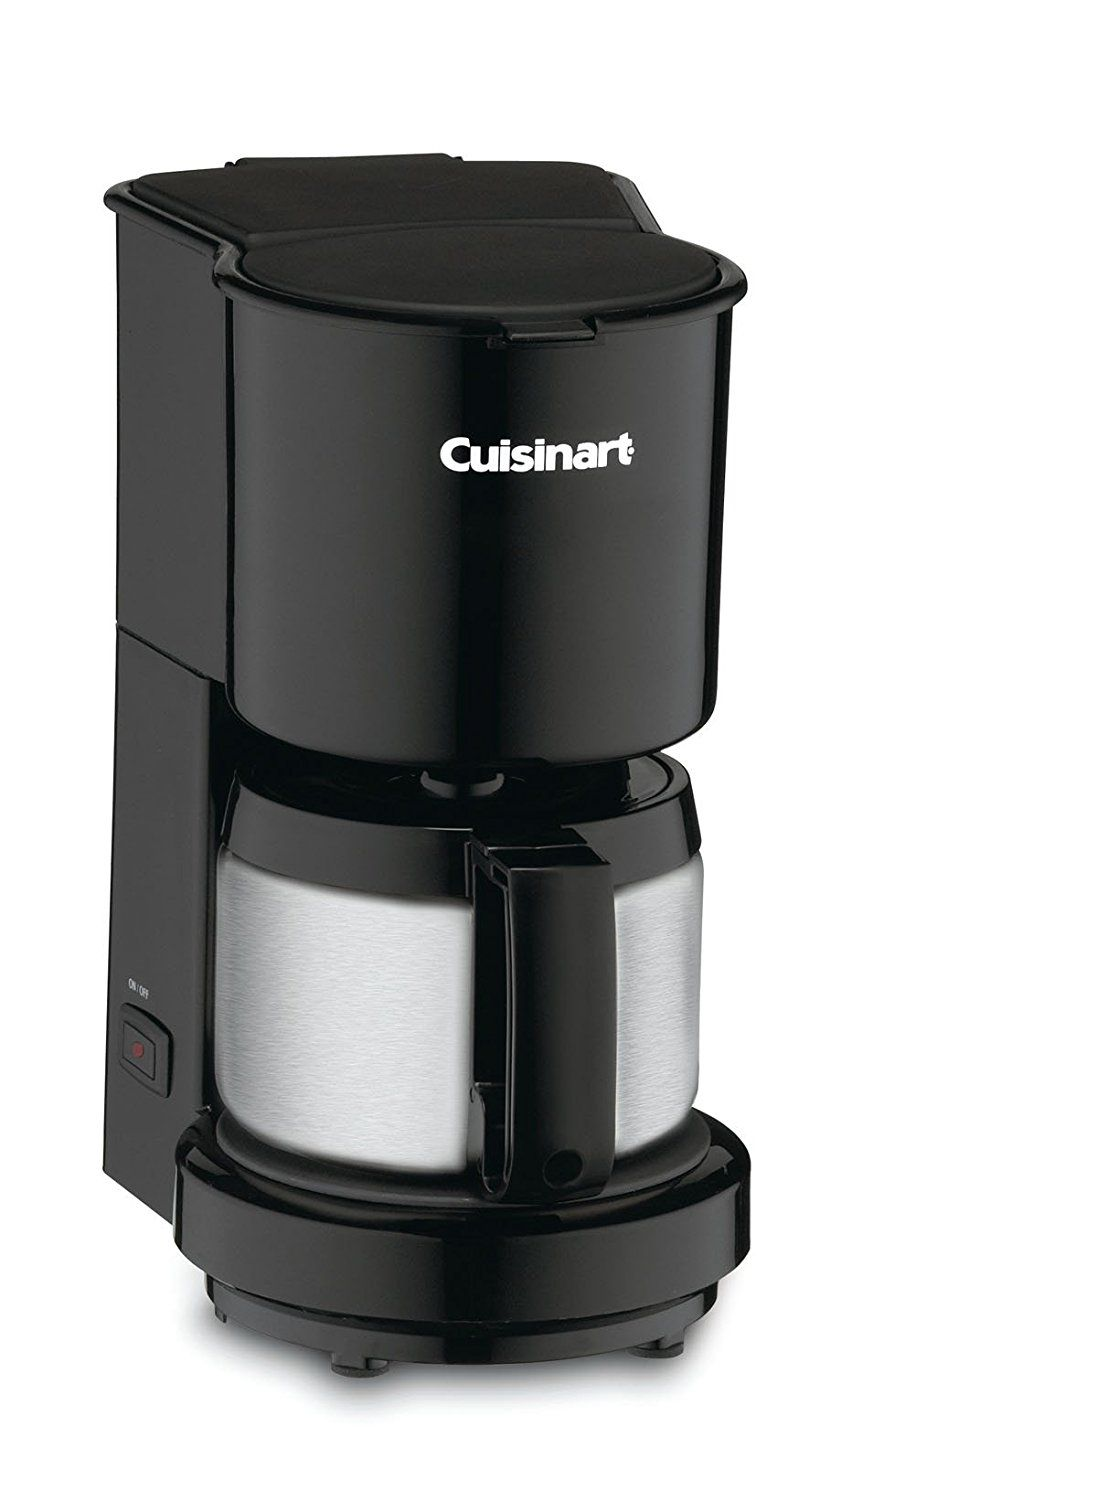 Amazon Com Cuisinart Dcc 450bk 4 Cup Coffeemaker With Stainless Steel Carafe Black Drip Coffeem 4 Cup Coffee Maker 5 Cup Coffee Maker Cuisinart Coffee Maker